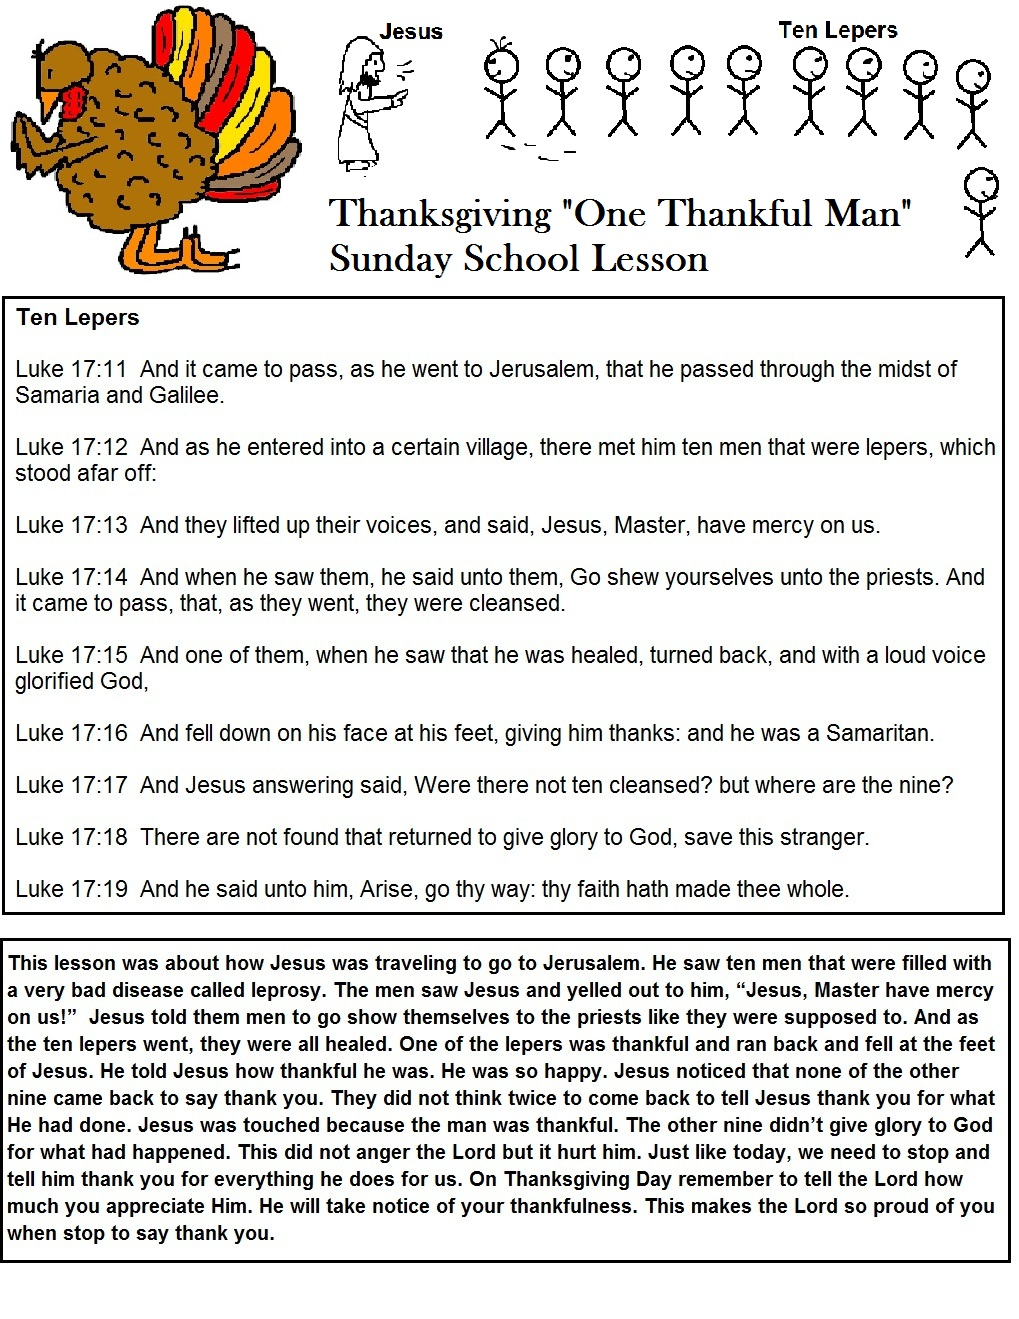 Thanksgiving Bible Verses - Bible Study Tools